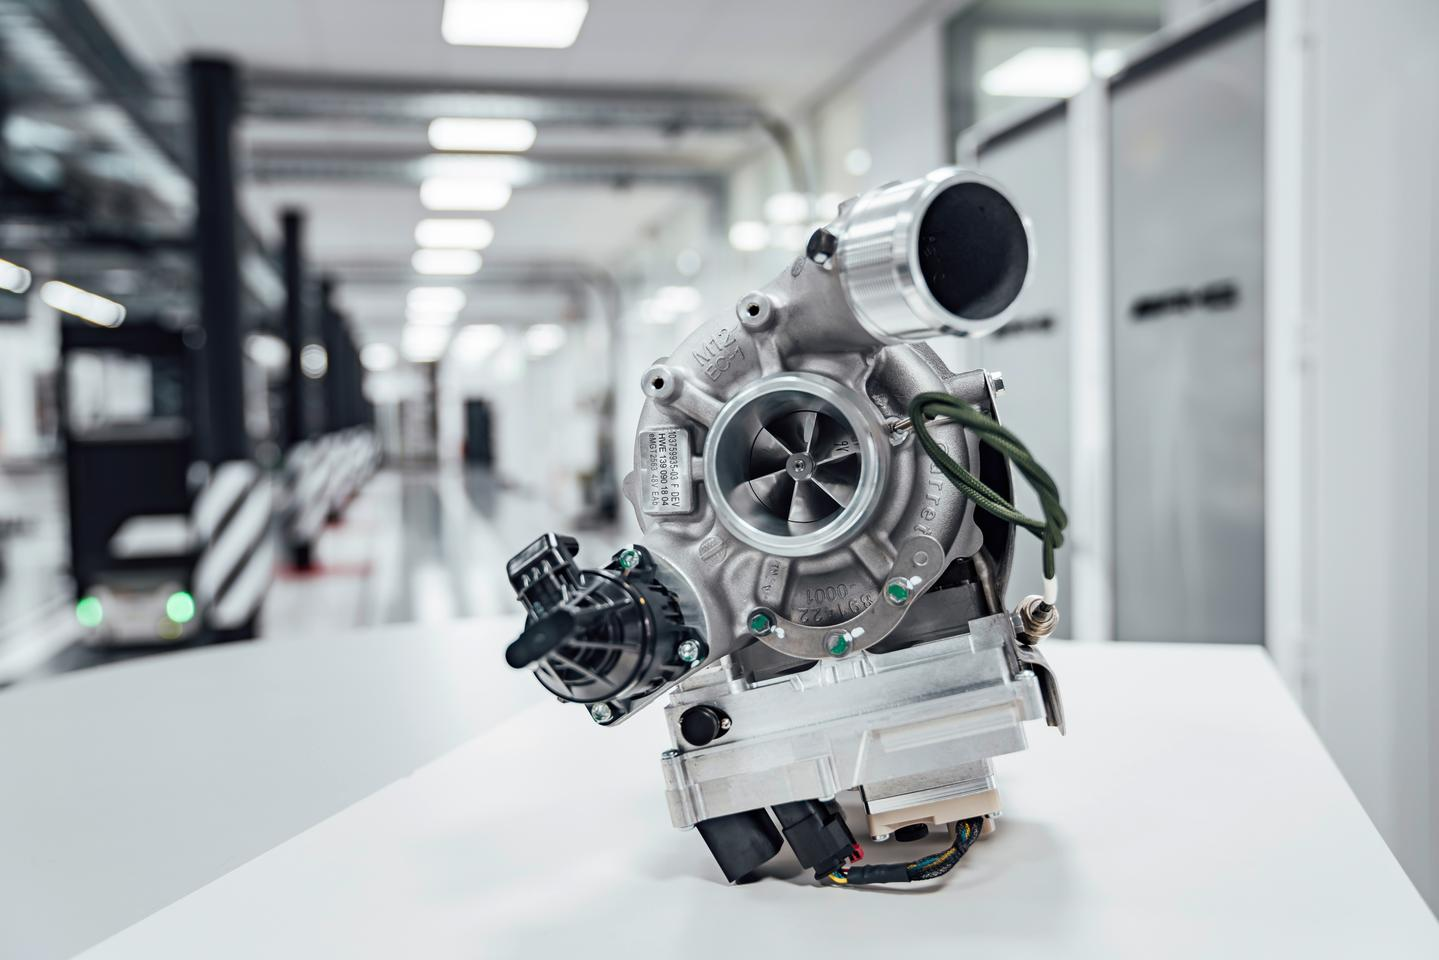 Coupling a small electric motor to a turbocharger will help Mercedes-Benz eliminate turbo lag, allowing engines to run bigger, more powerful and more efficient turbo systems without affecting responsiveness